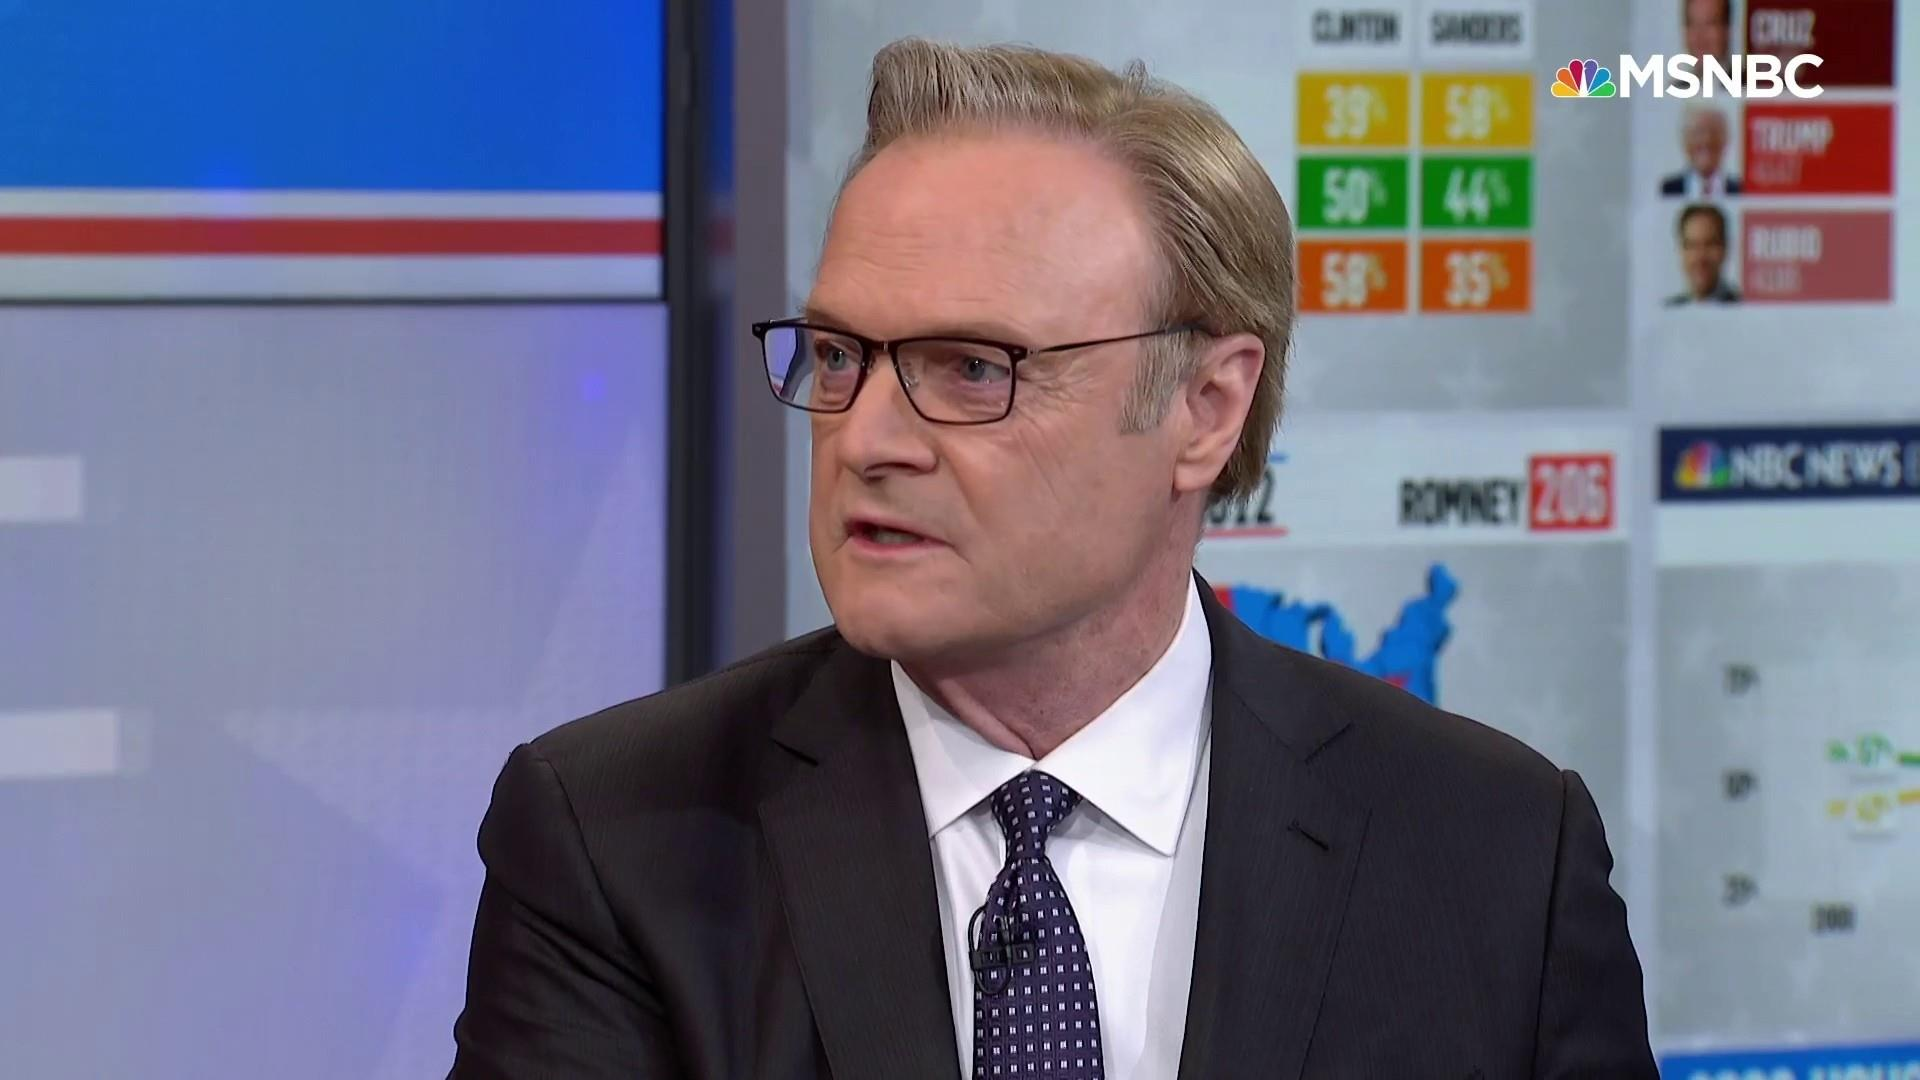 Lawrence: Iowa Caucuses weren't originally invented to choose president